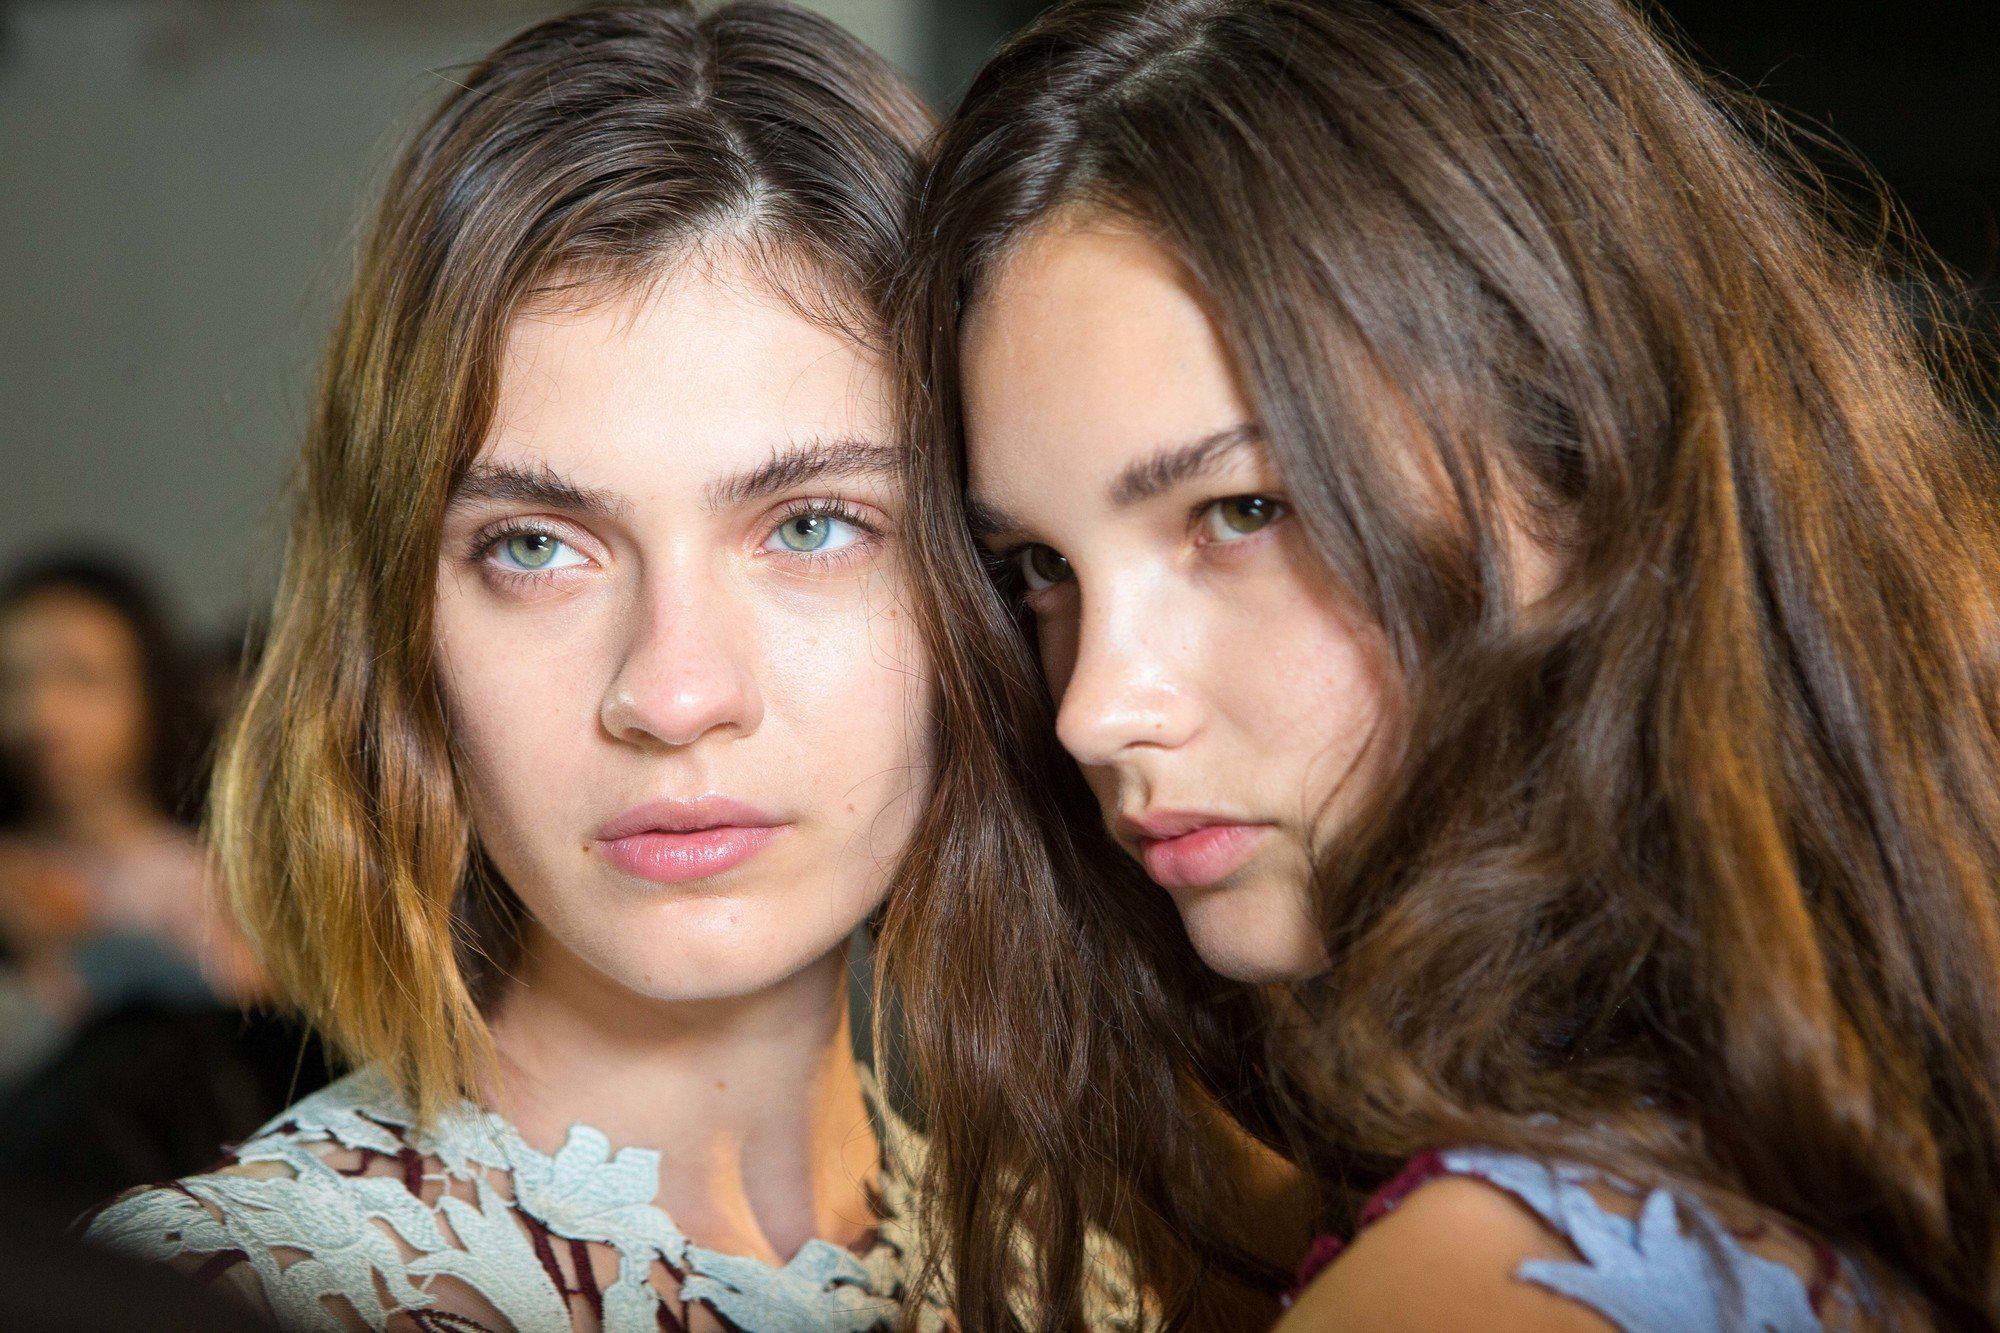 two models backstage at a fashion show, one with short light brown hair cut into a wavy bob and the other with long brunette hair styled into waves